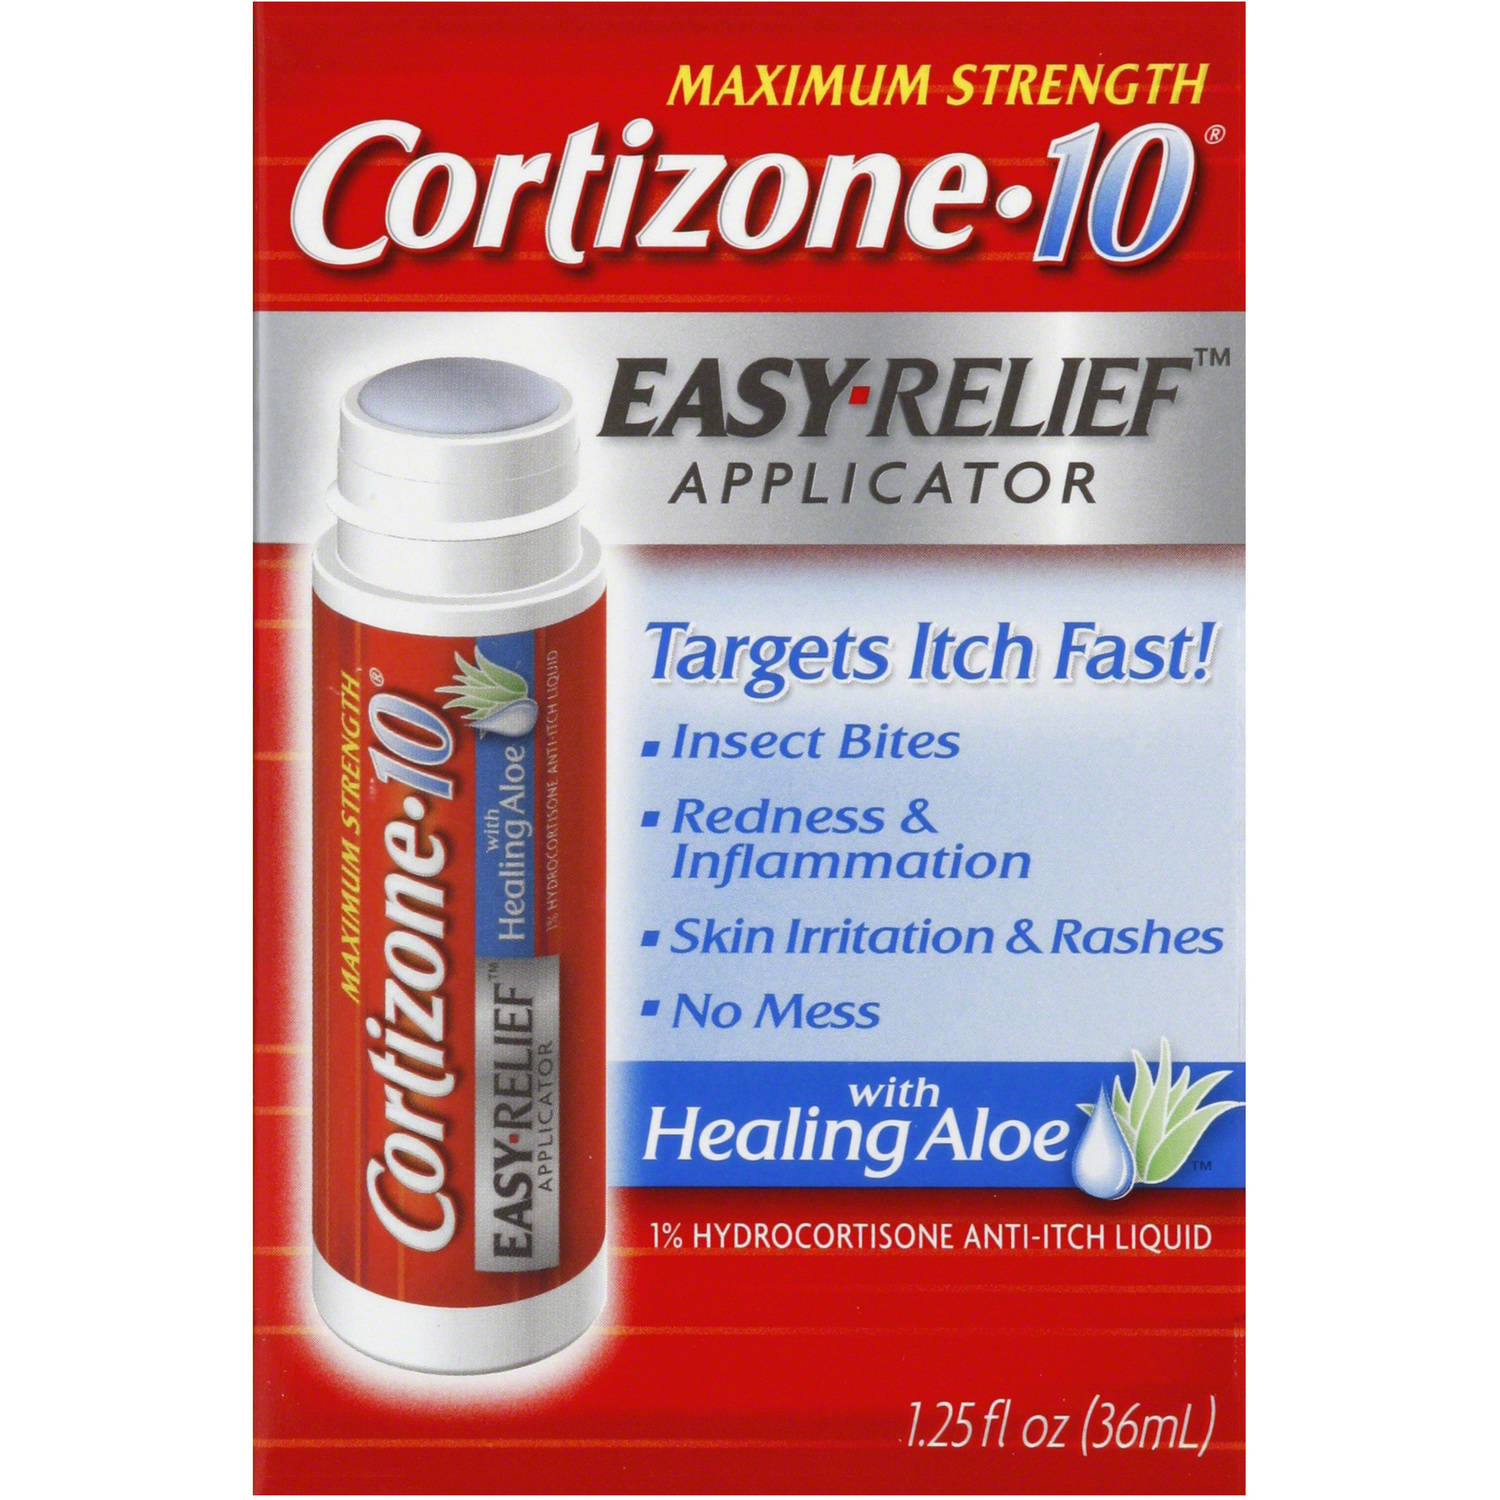 Cortizone 10 Easy Relief Applicator Anti-Itch Liquid, 1.25 oz